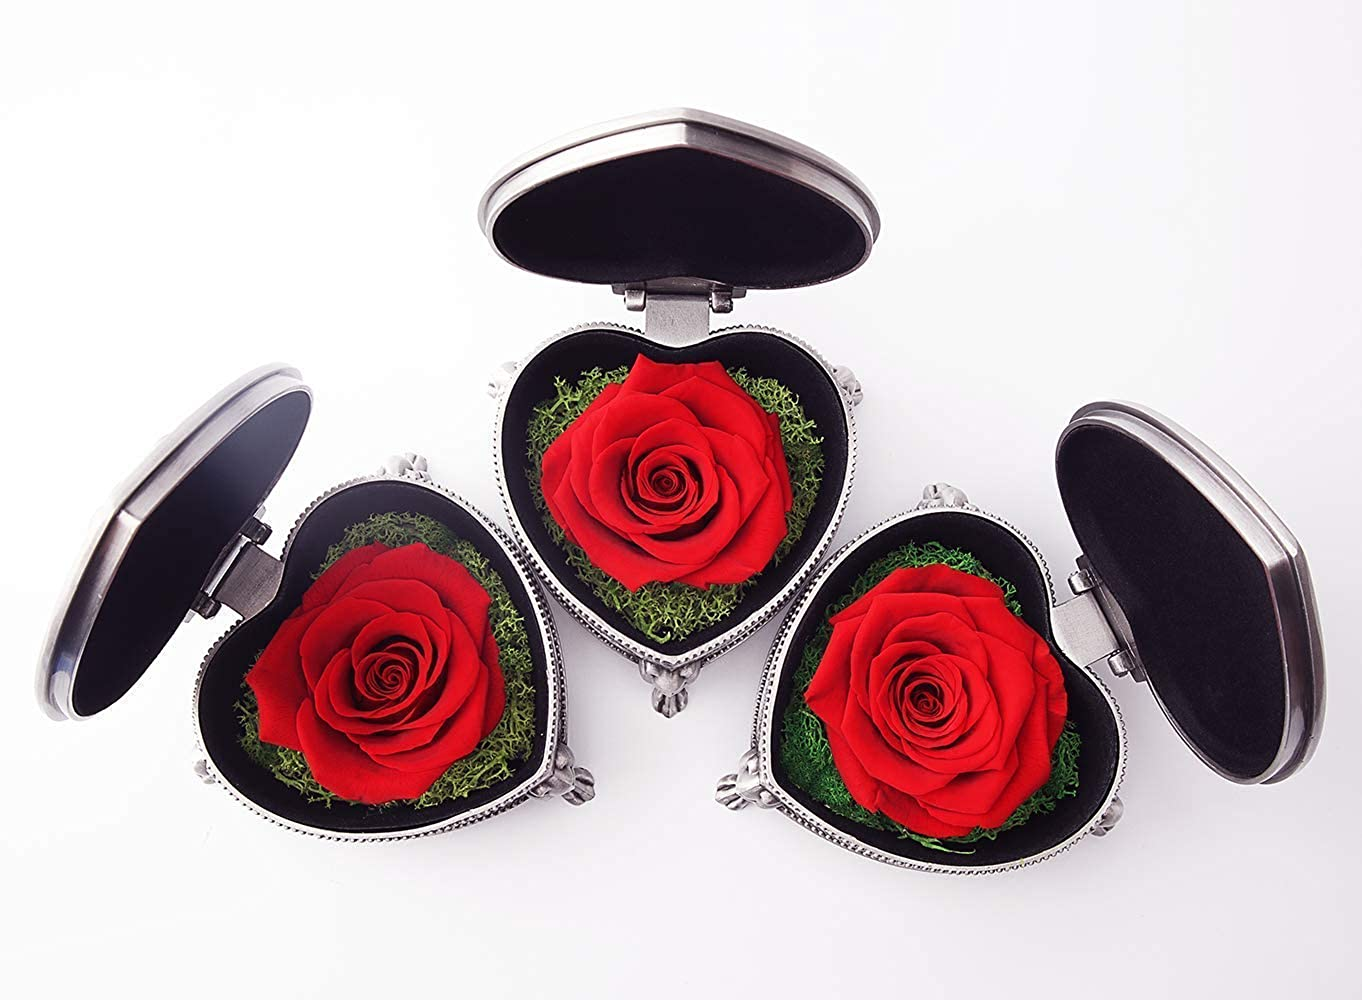 Mothers Day Girlfriend Sister Girls IDOXE Handmade Preserved Flower Rose,Never Withered Roses for her